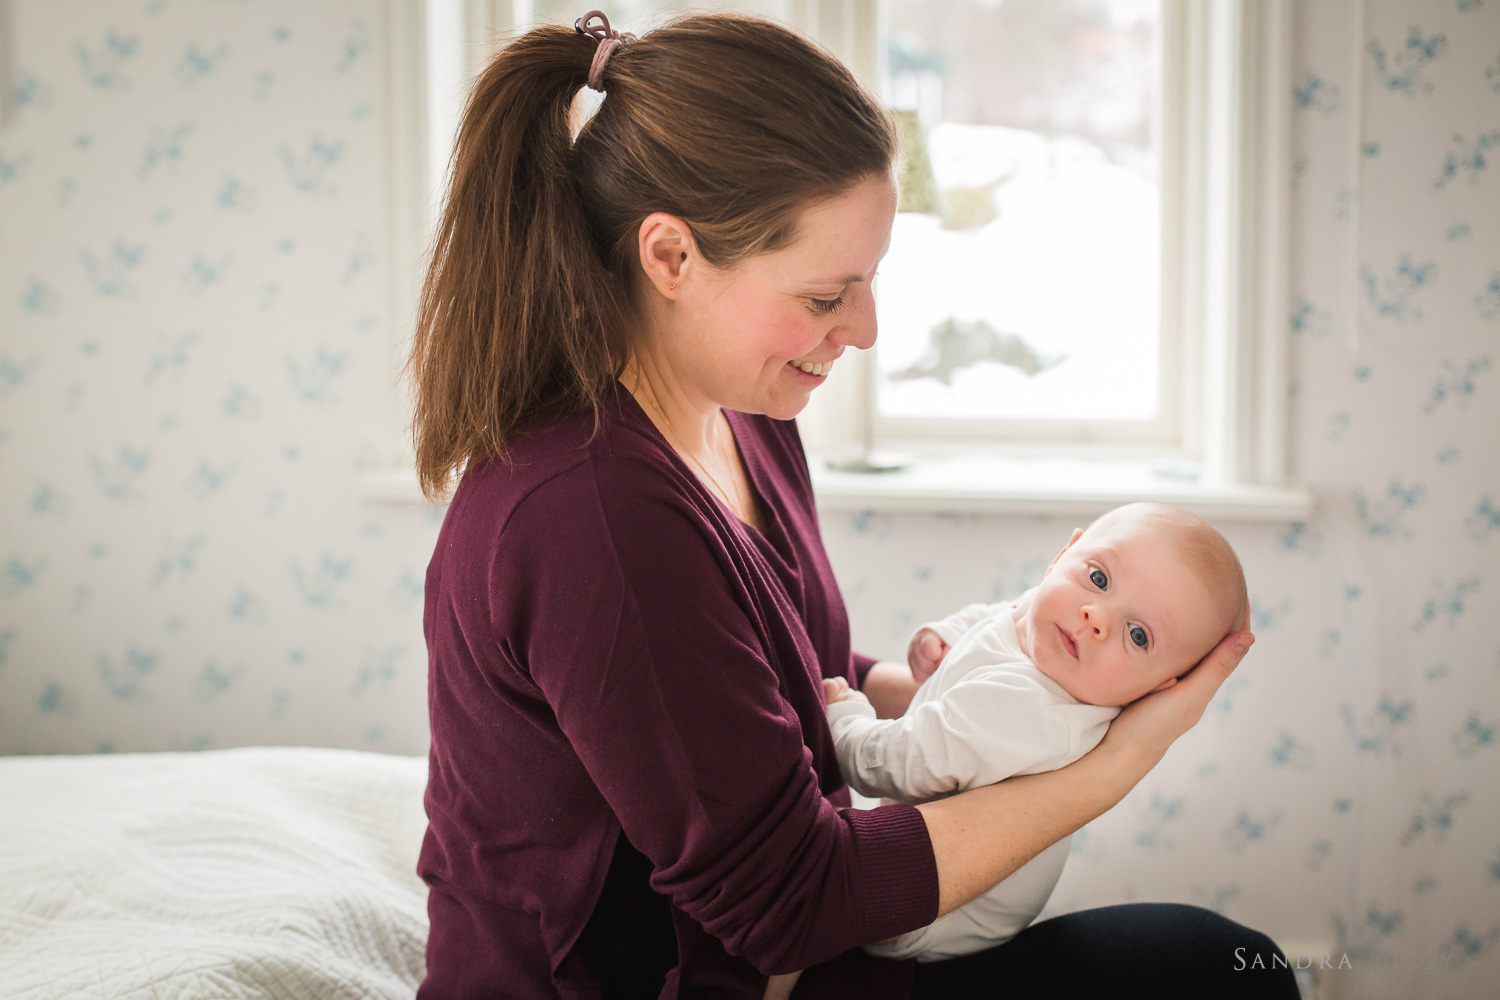 mother-and-baby-lifestyle-photo-session-at-home-by-sandra-jolly.jpg